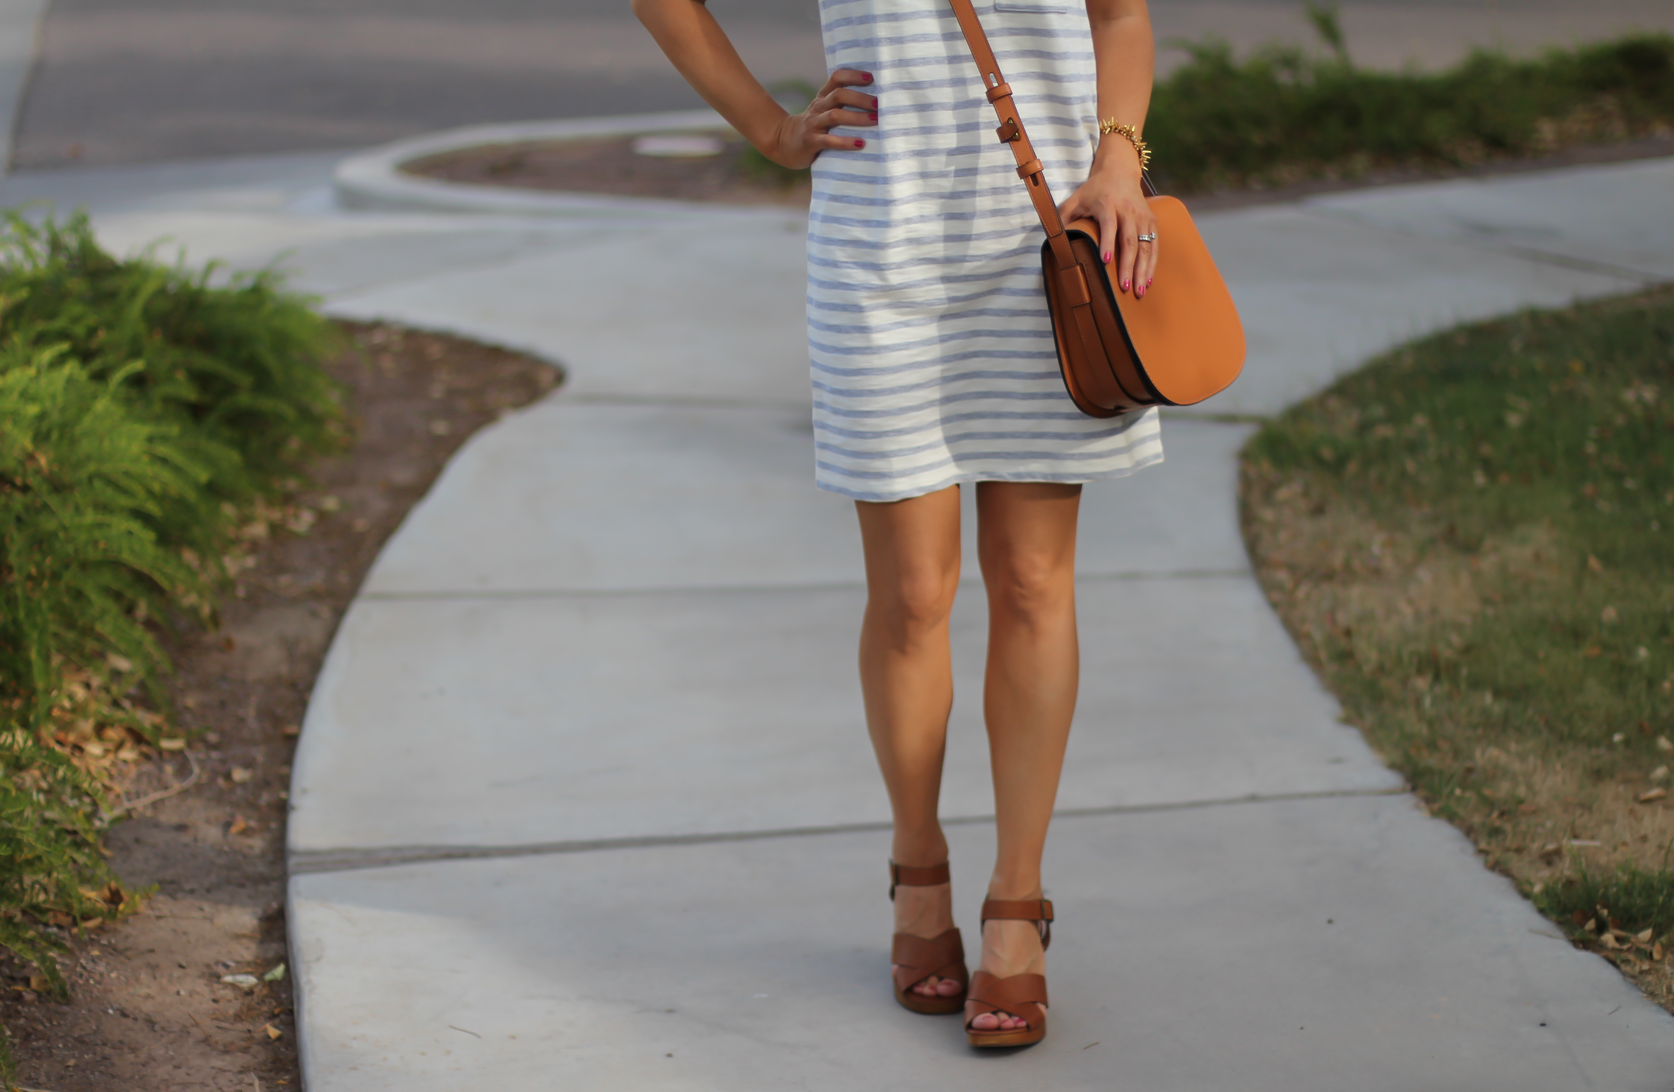 Grey Striped Button Back Short Sleeve Dress, Cognac Leather Wedge Sandals, Cognac Saddlebag, Madewell, Tory Burch 10